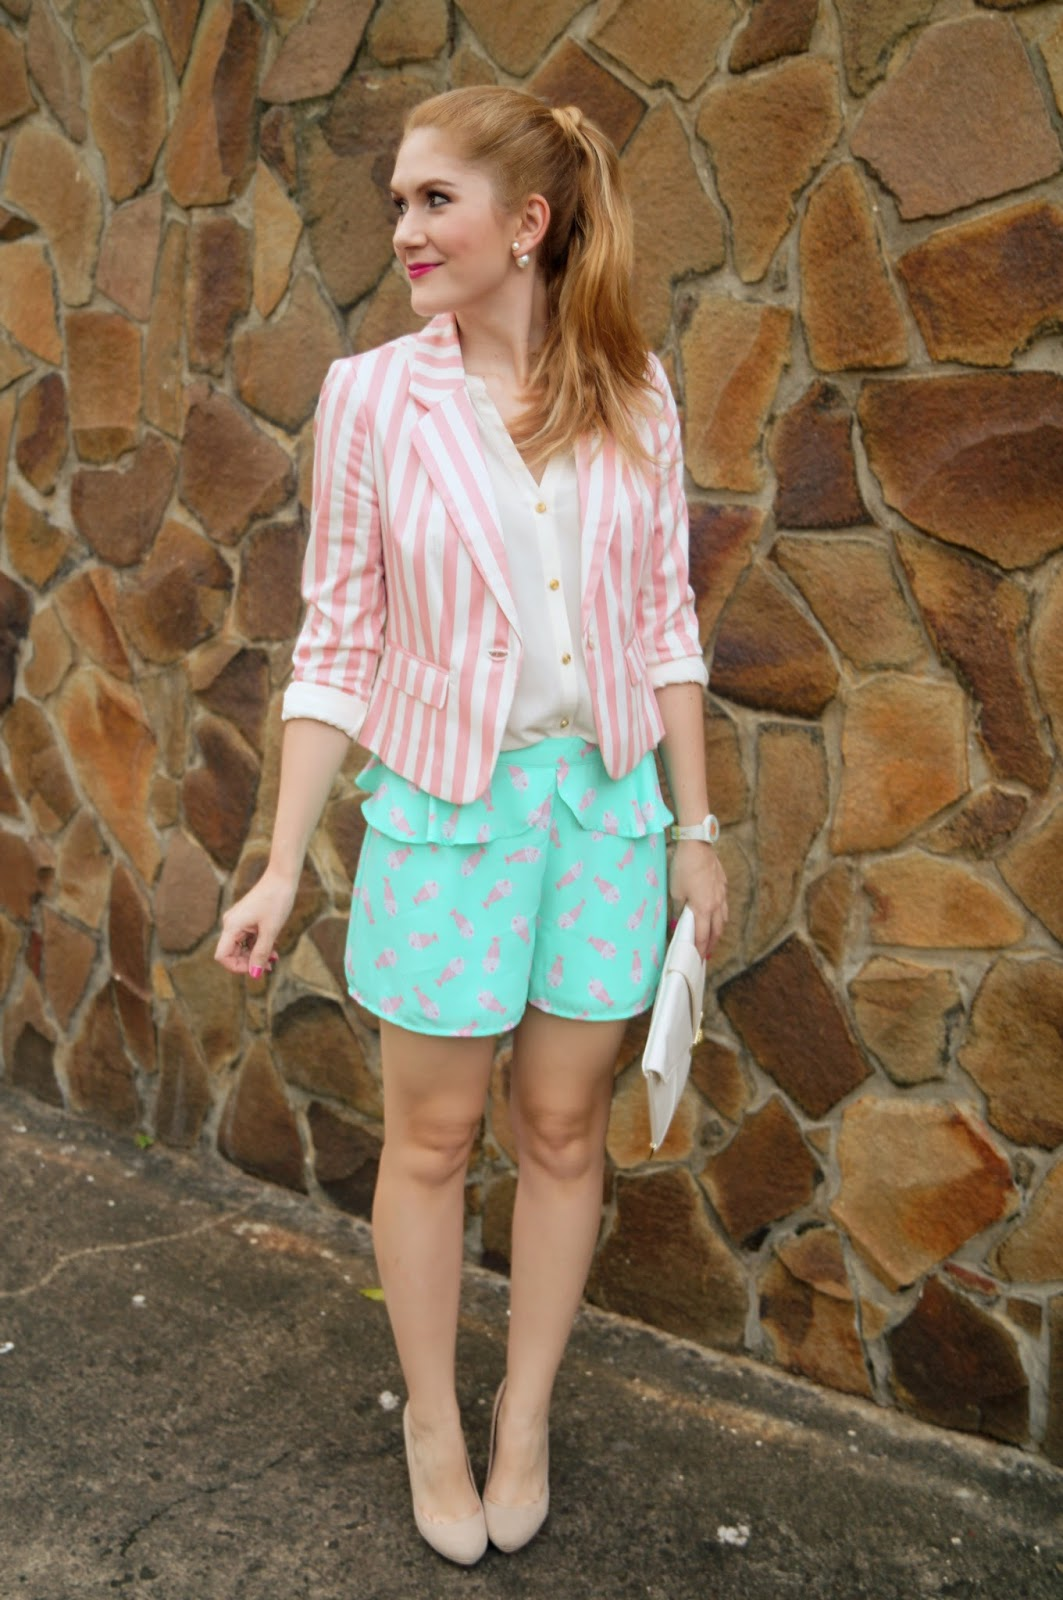 Cute outfit in candy colors!